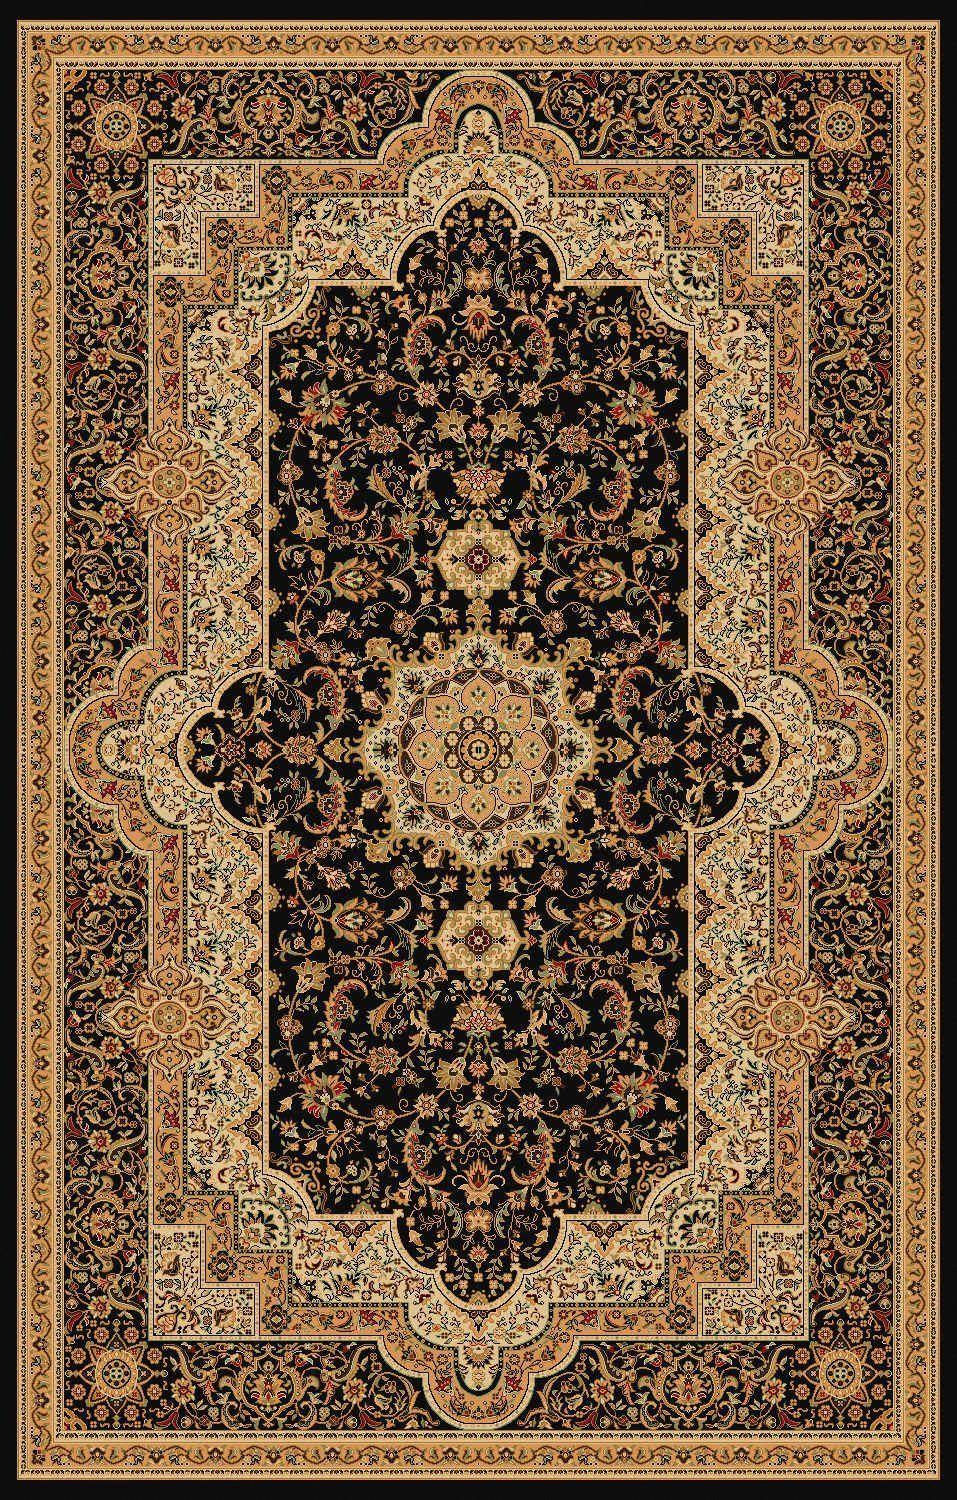 Stair Rods For Carpet Runners Id 9712224619 Traditional Persian Rugs Rugs On Carpet Buying Carpet